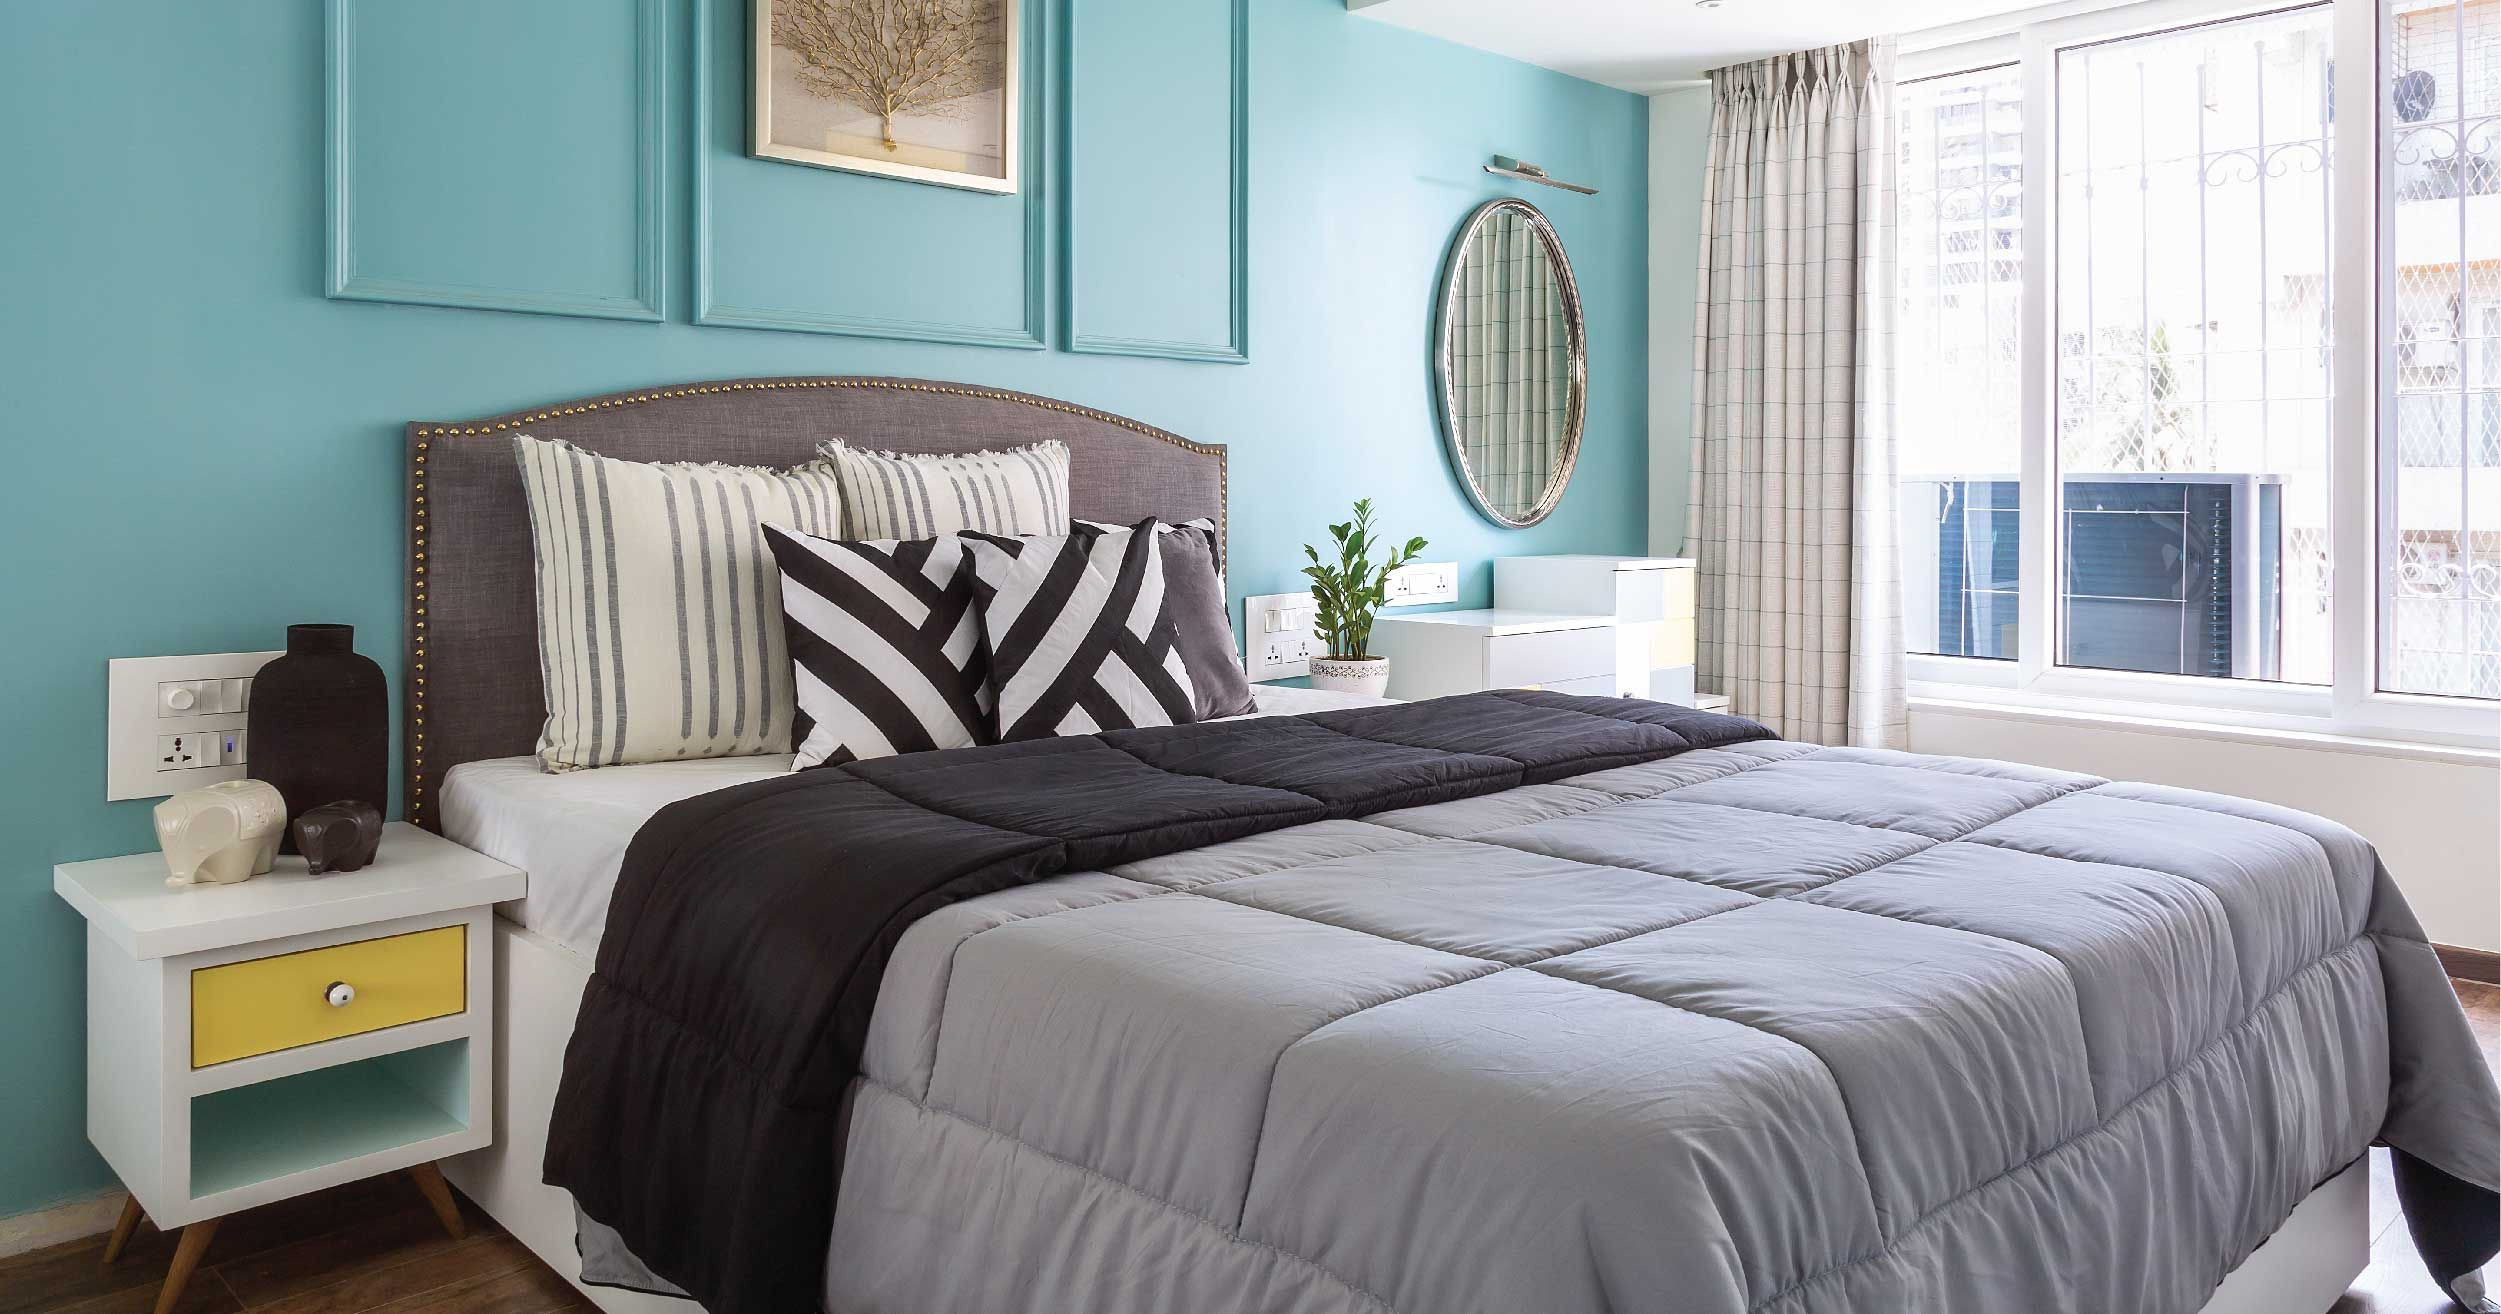 Vastu For Bedroom Must Know Tips To Boost Positive Energy